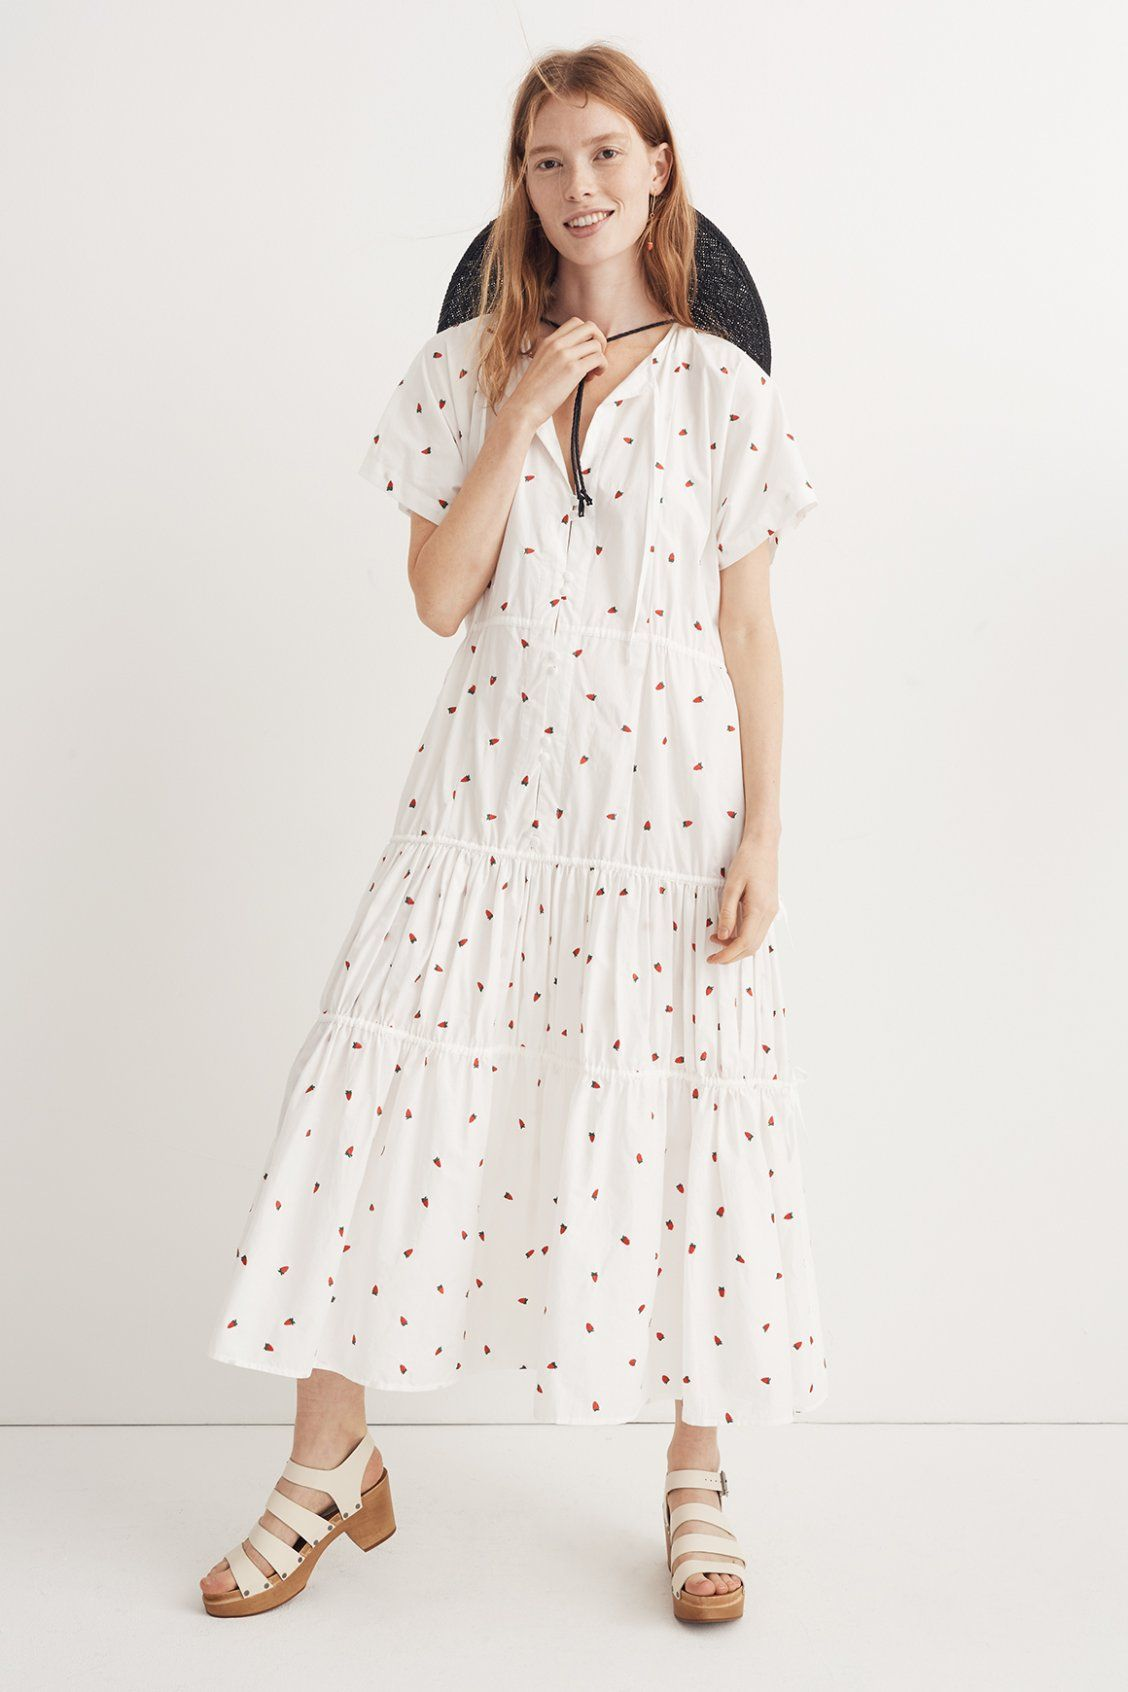 8fca457c274 madewell strawberry tiered dress worn with straw hat + multistrap wood  sandal. call 866 544 1937 or email shopfirst madewell.com to pre-order.